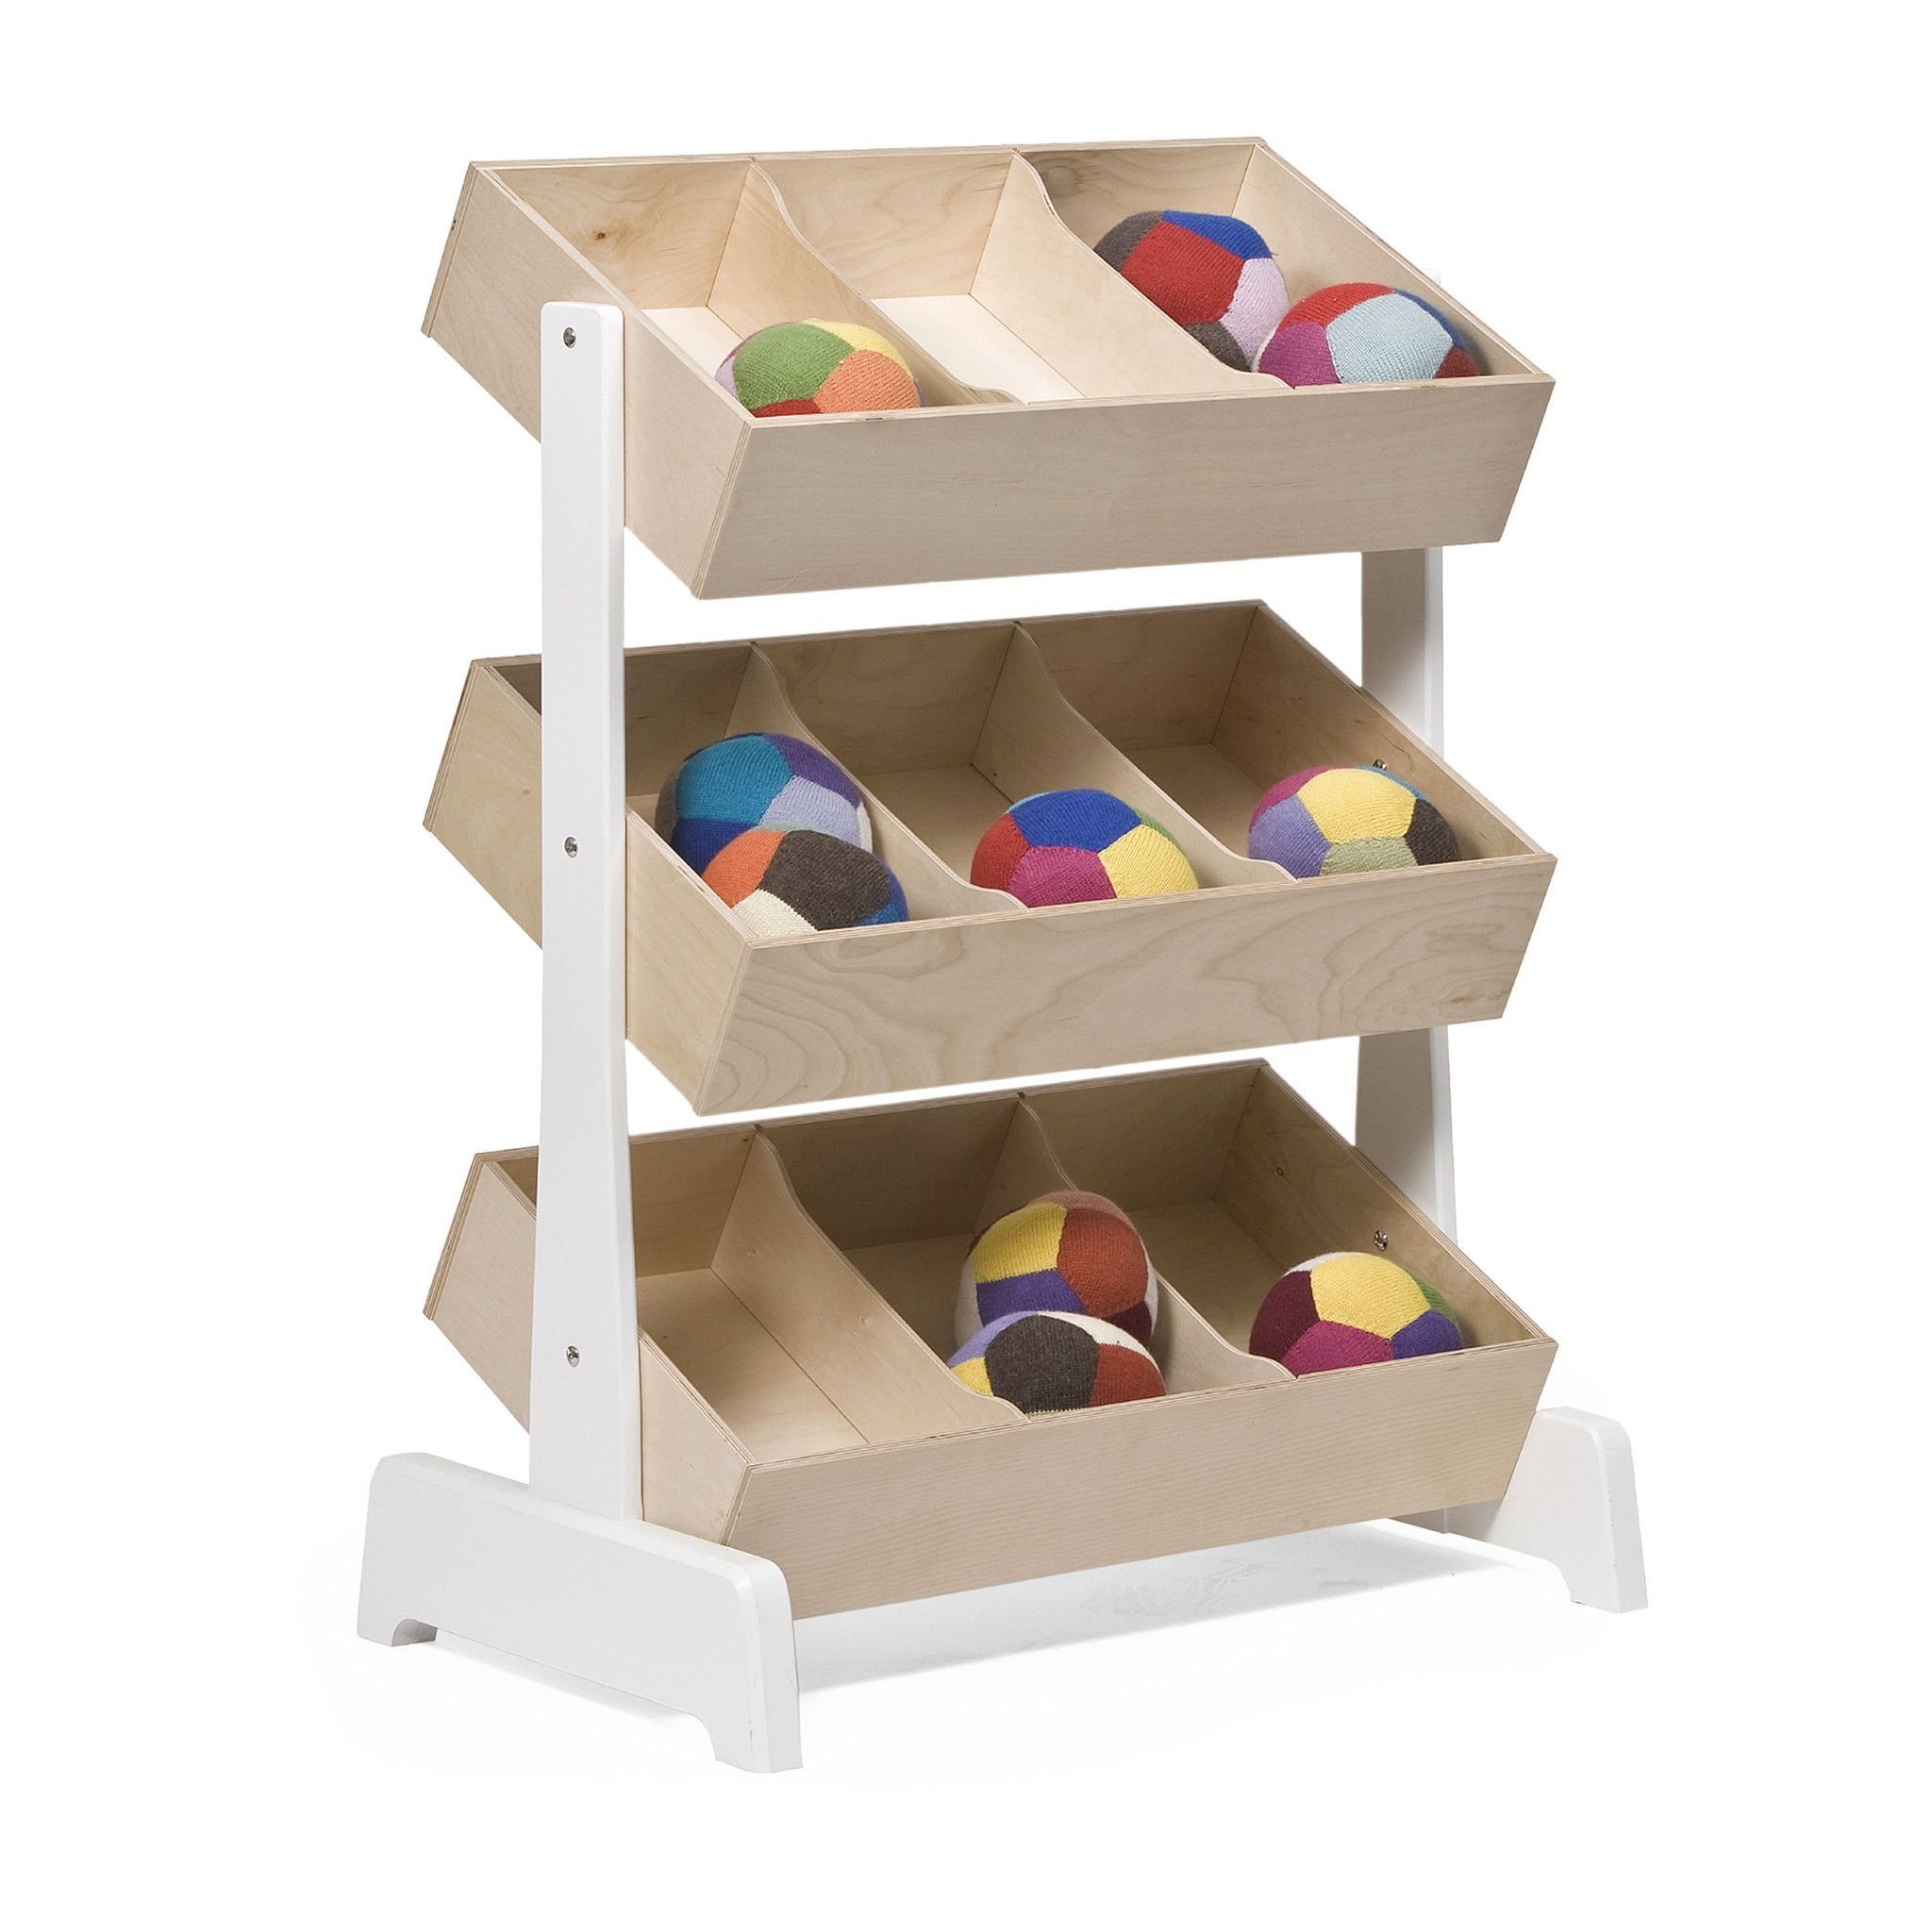 Small Crop Of Kids Storage Bins